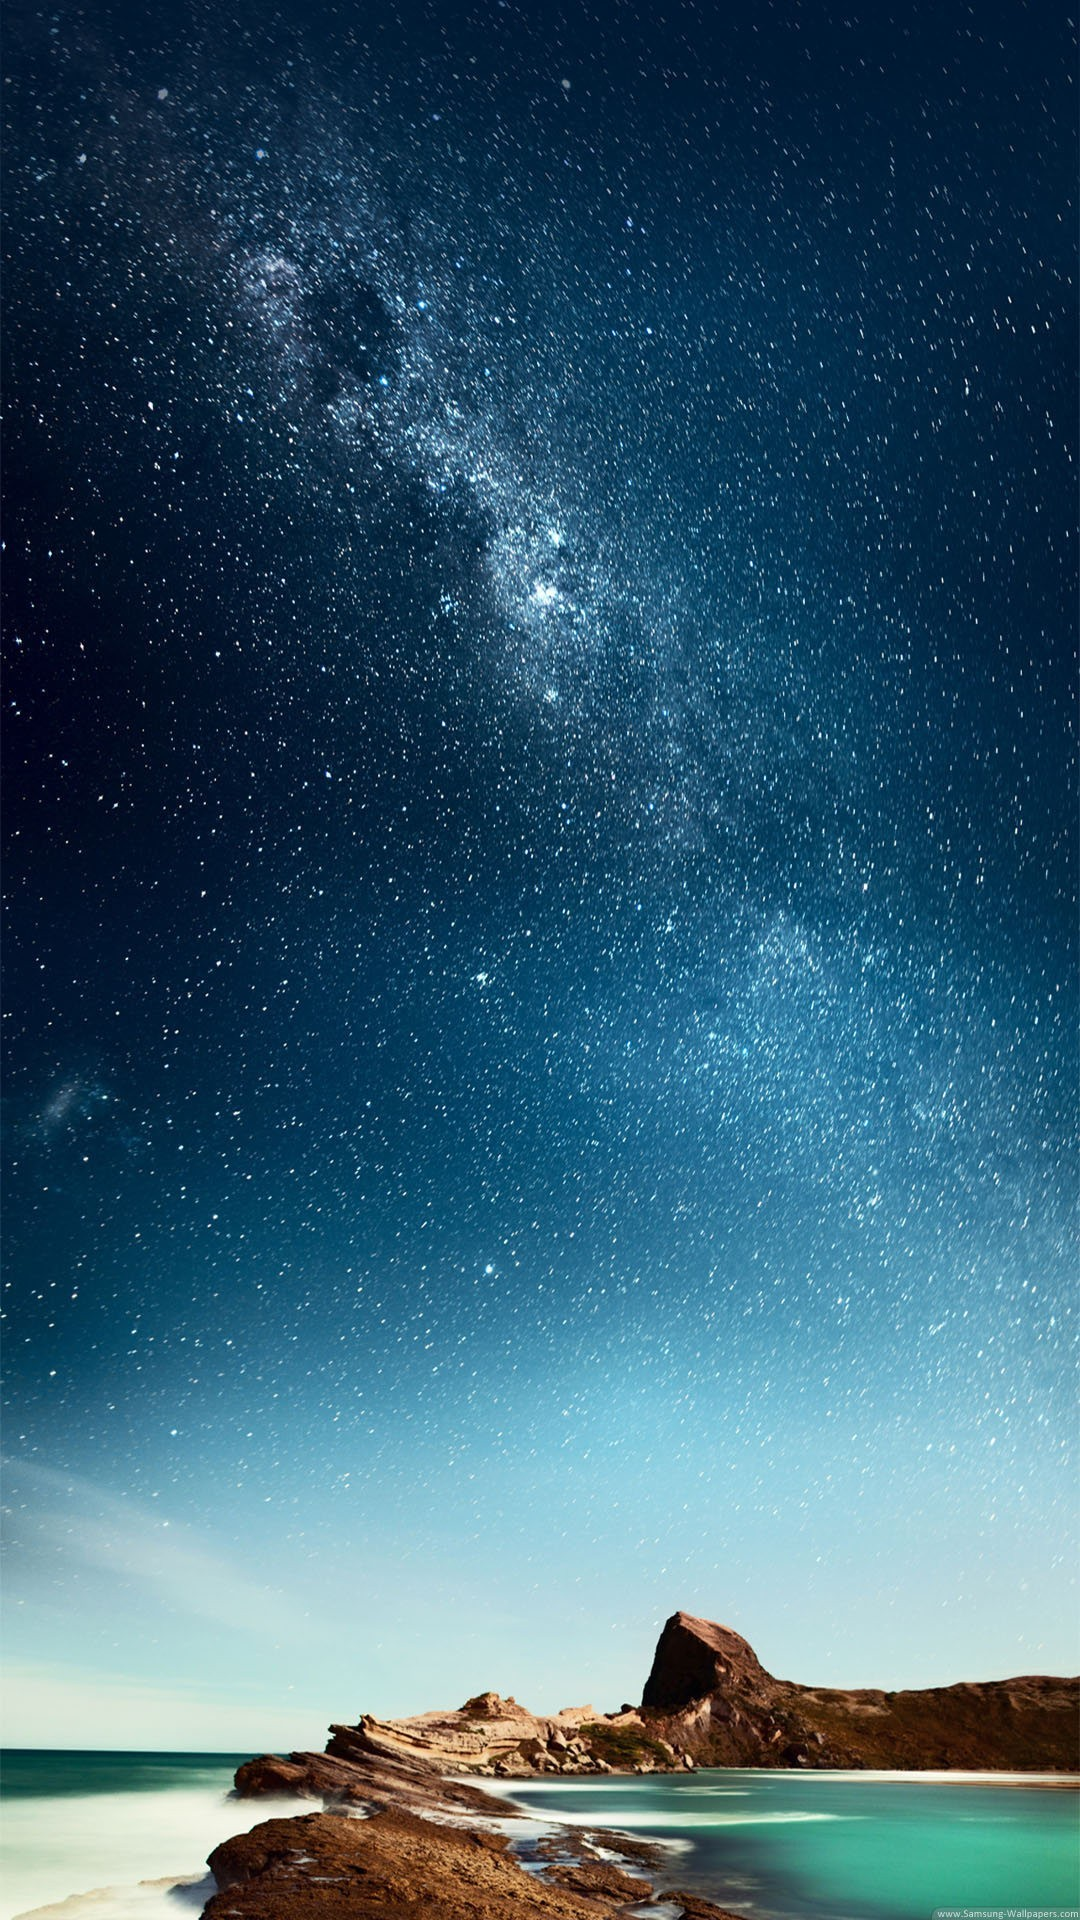 Cool Wallpaper Night Iphone - night-and-day-in-the-beach-wallpaper-background-1080x1920  Pictures-363392.jpg